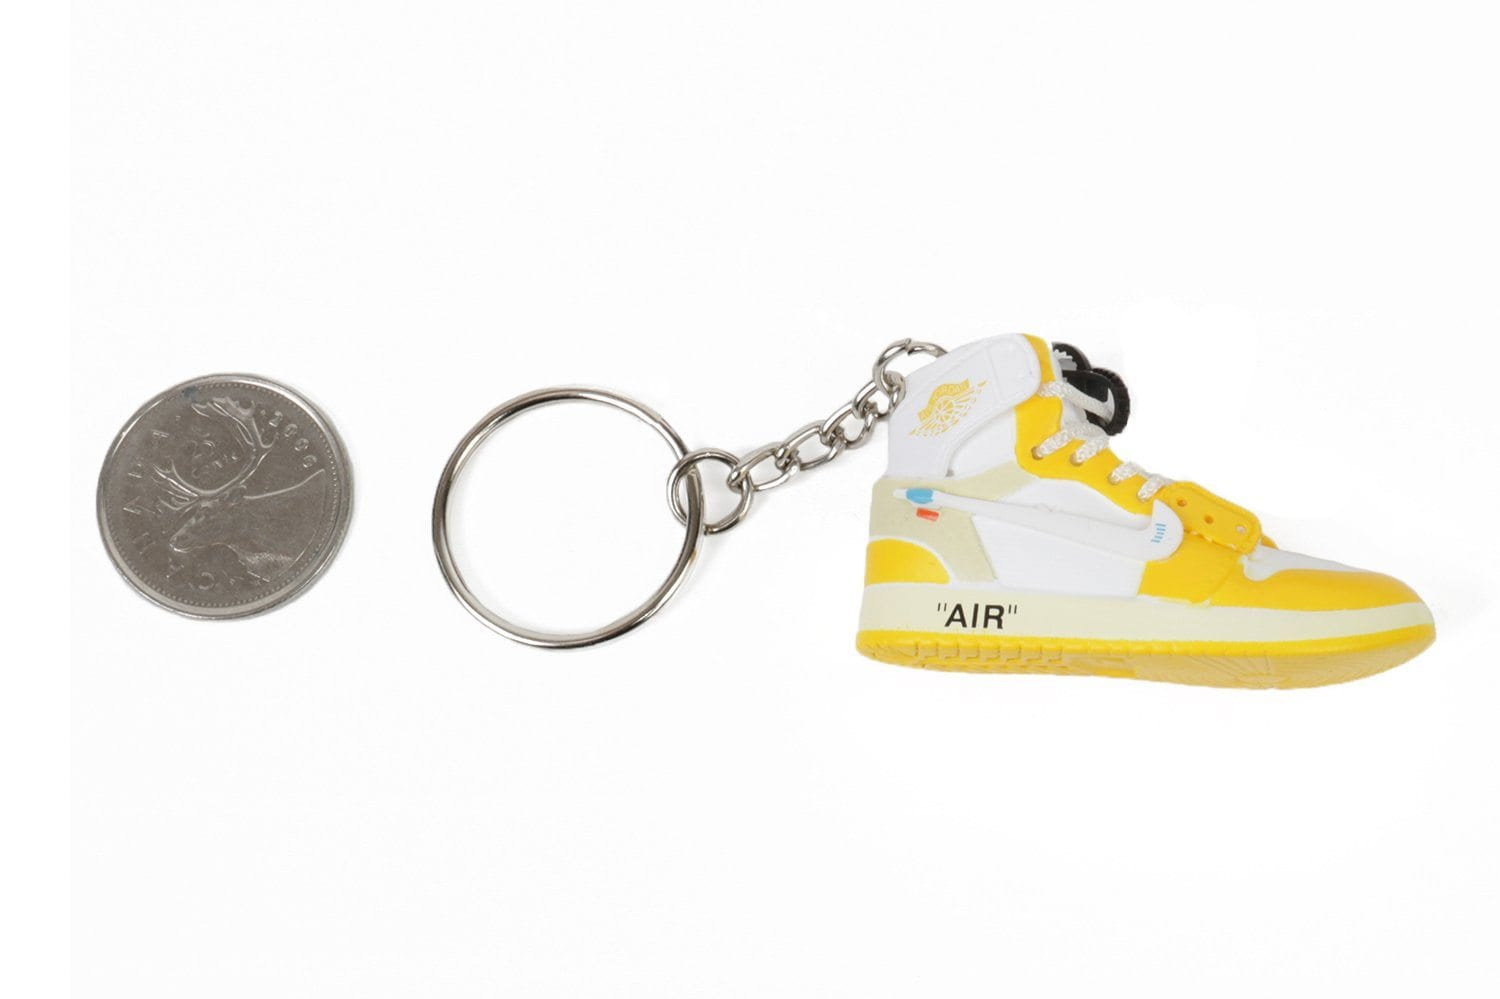 SNEAKER KEY CHAIN ACCESSORIES ACCESSORIES